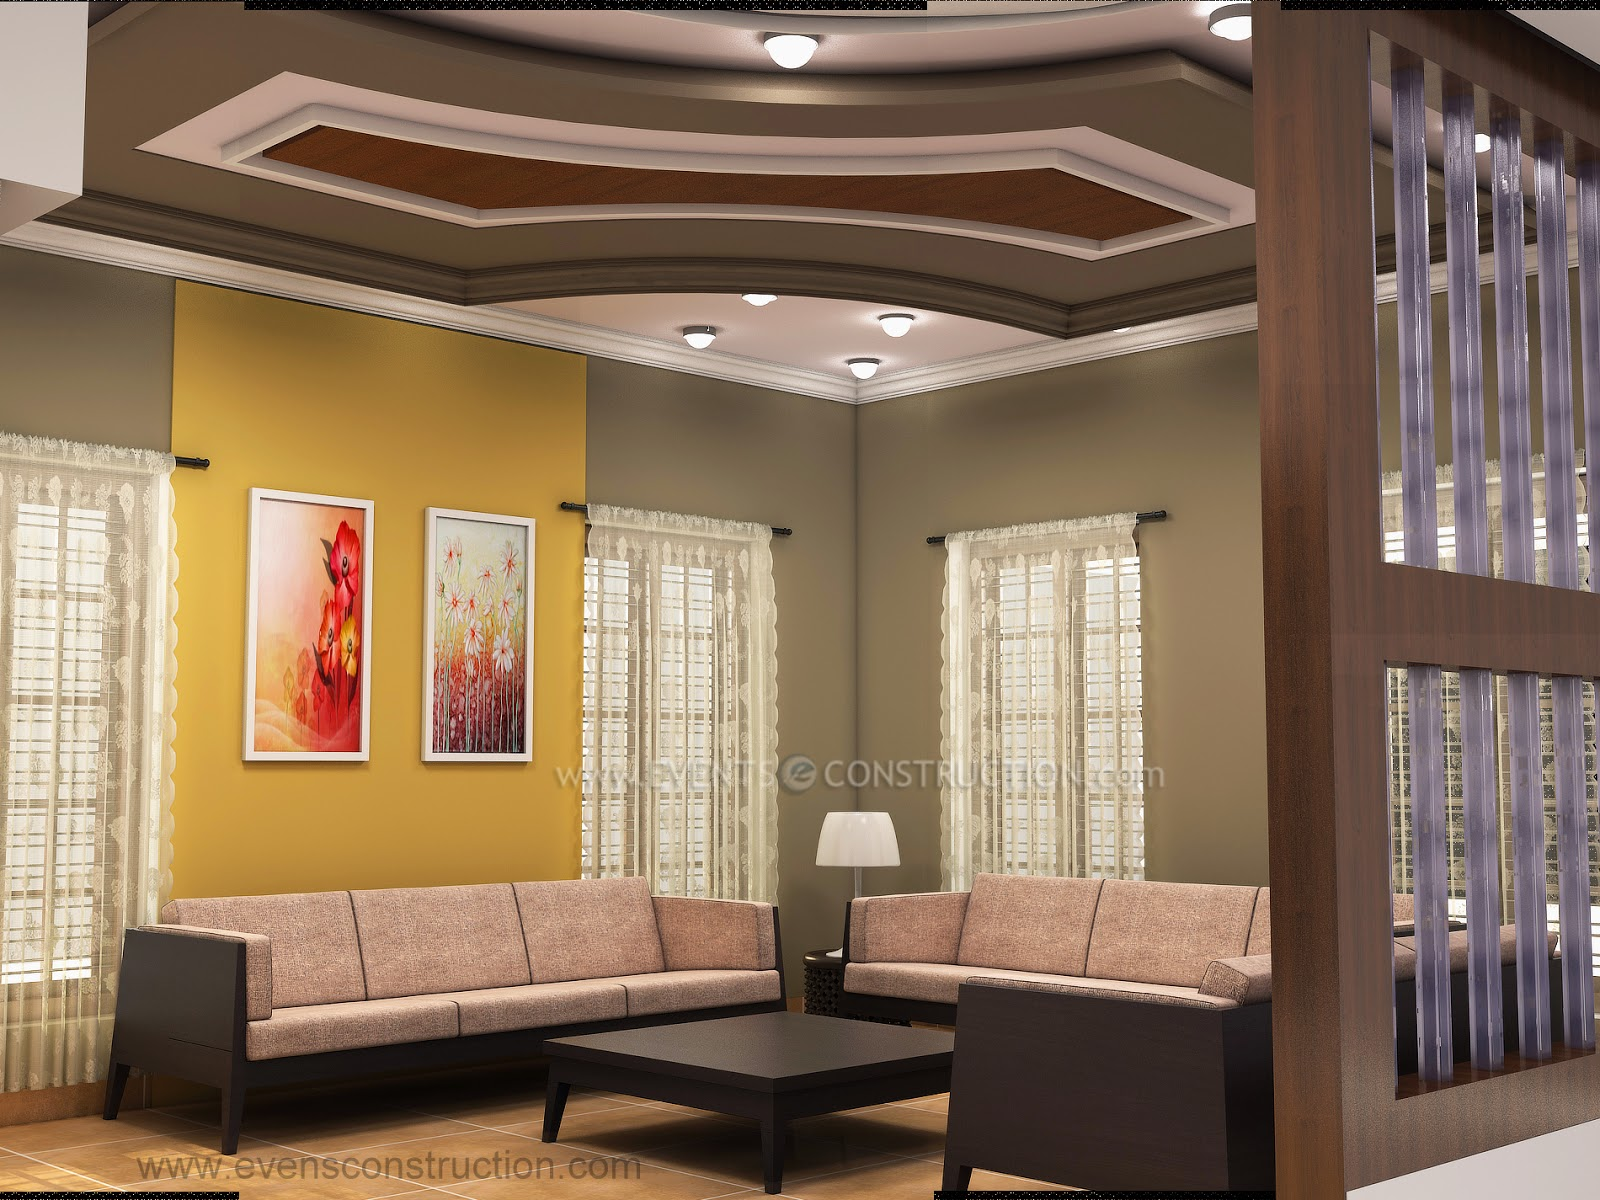 Guest room interior guest living room design for kerala houses with false ceiling